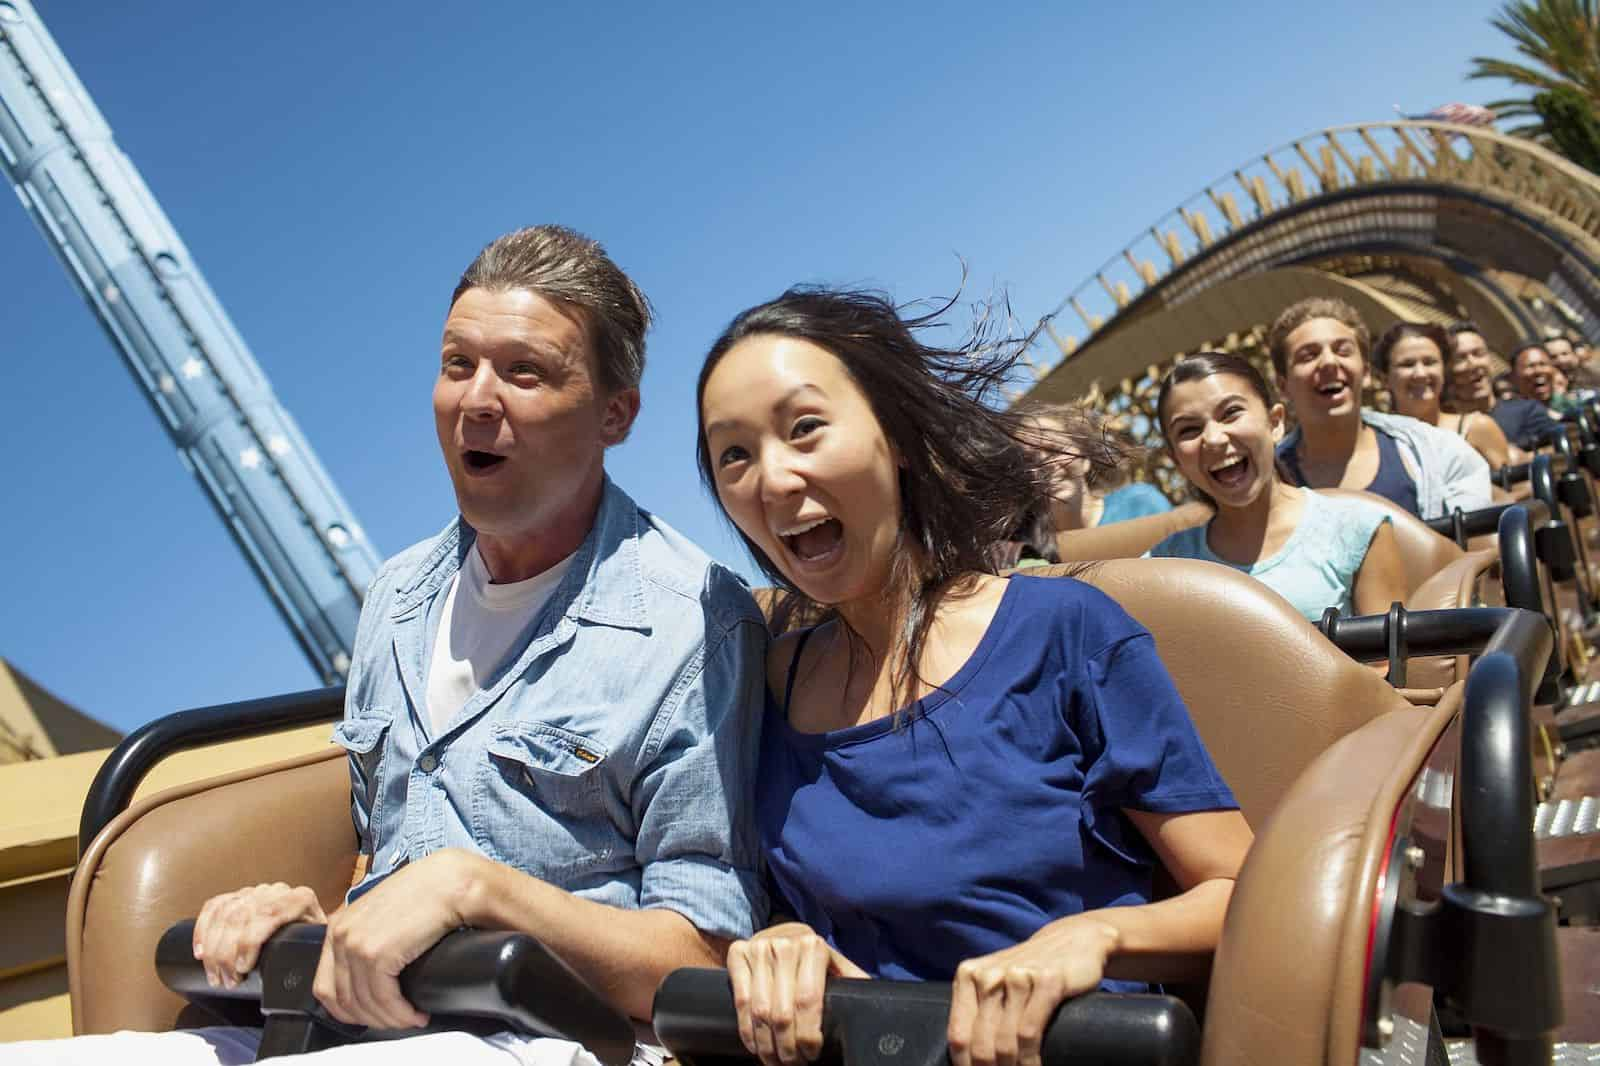 Top 10 Amusement Park Safety Tips Ehs Today